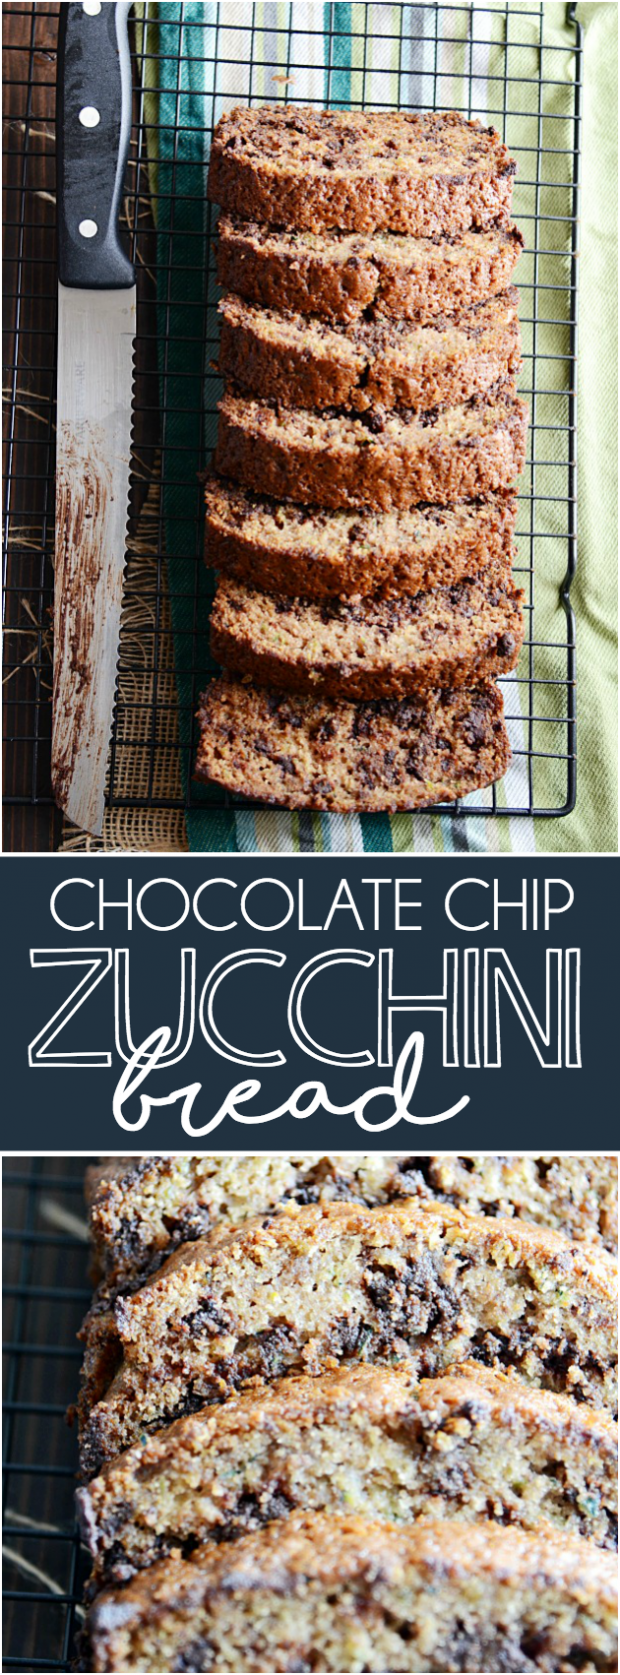 Nothing beats a thick slice of super moist chocolate chip zucchini bread smothered in butter.